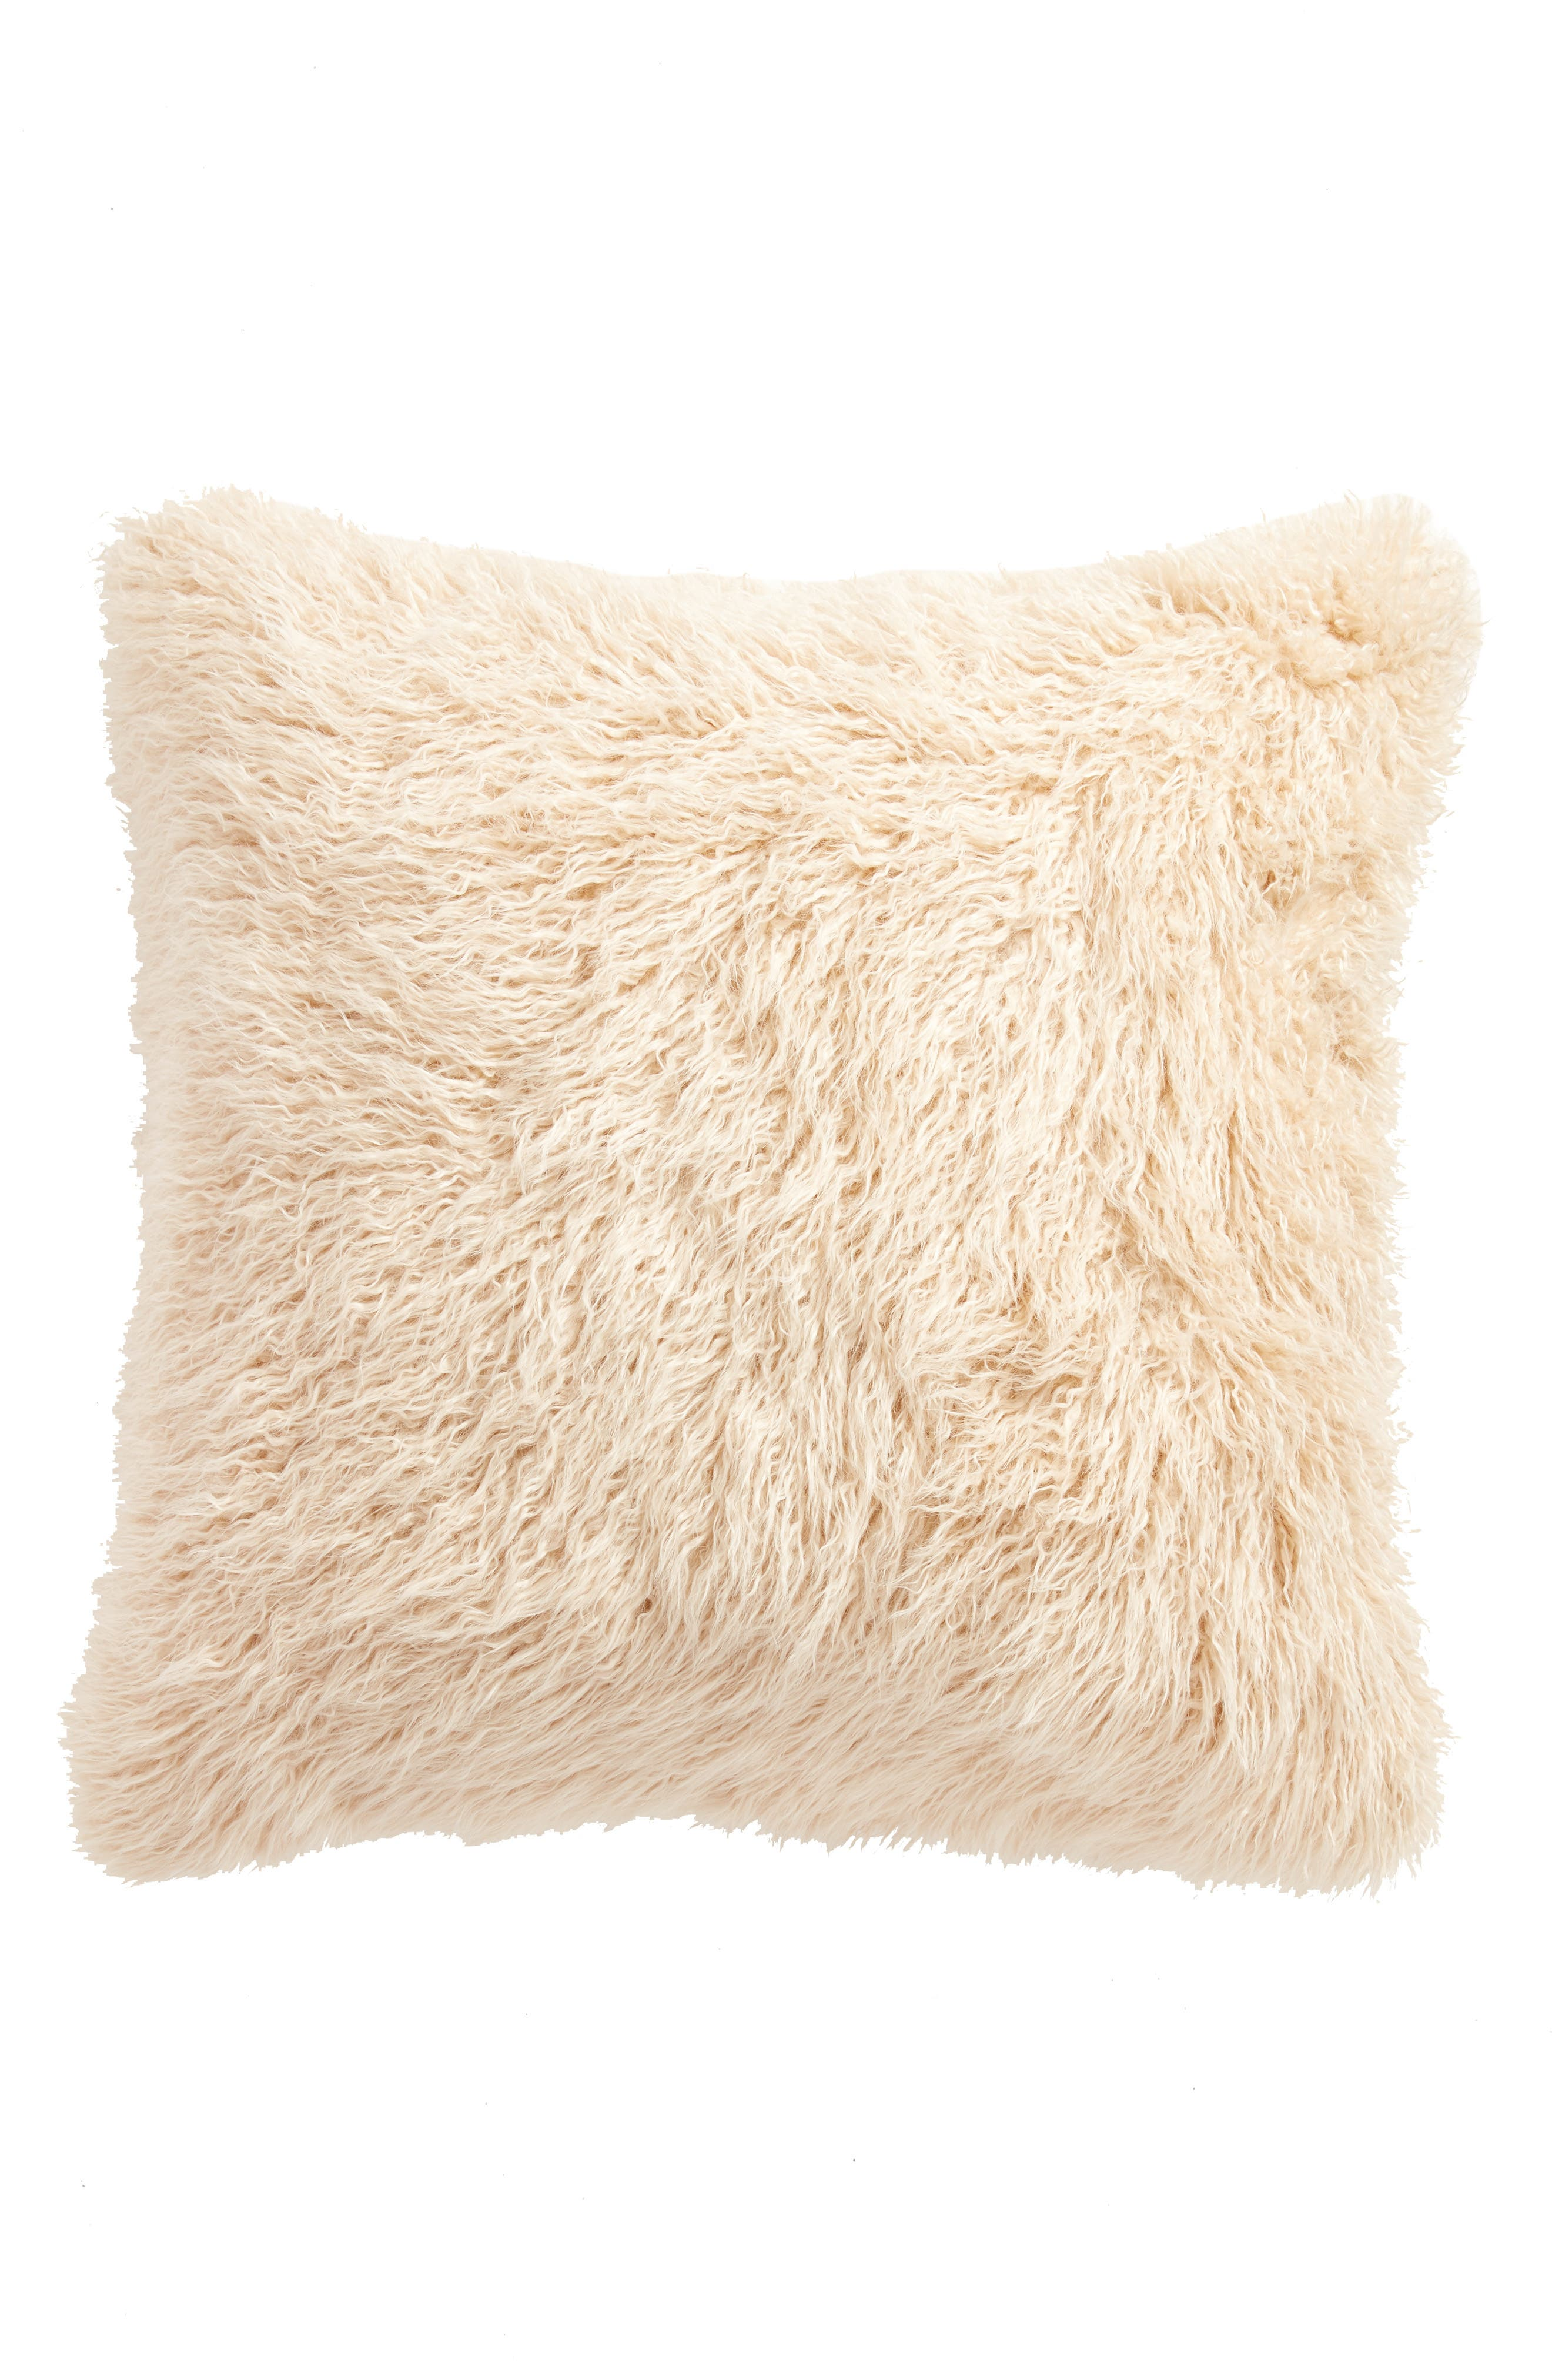 Curly Faux Fur Pillow,                             Alternate thumbnail 2, color,                             Beige Beach